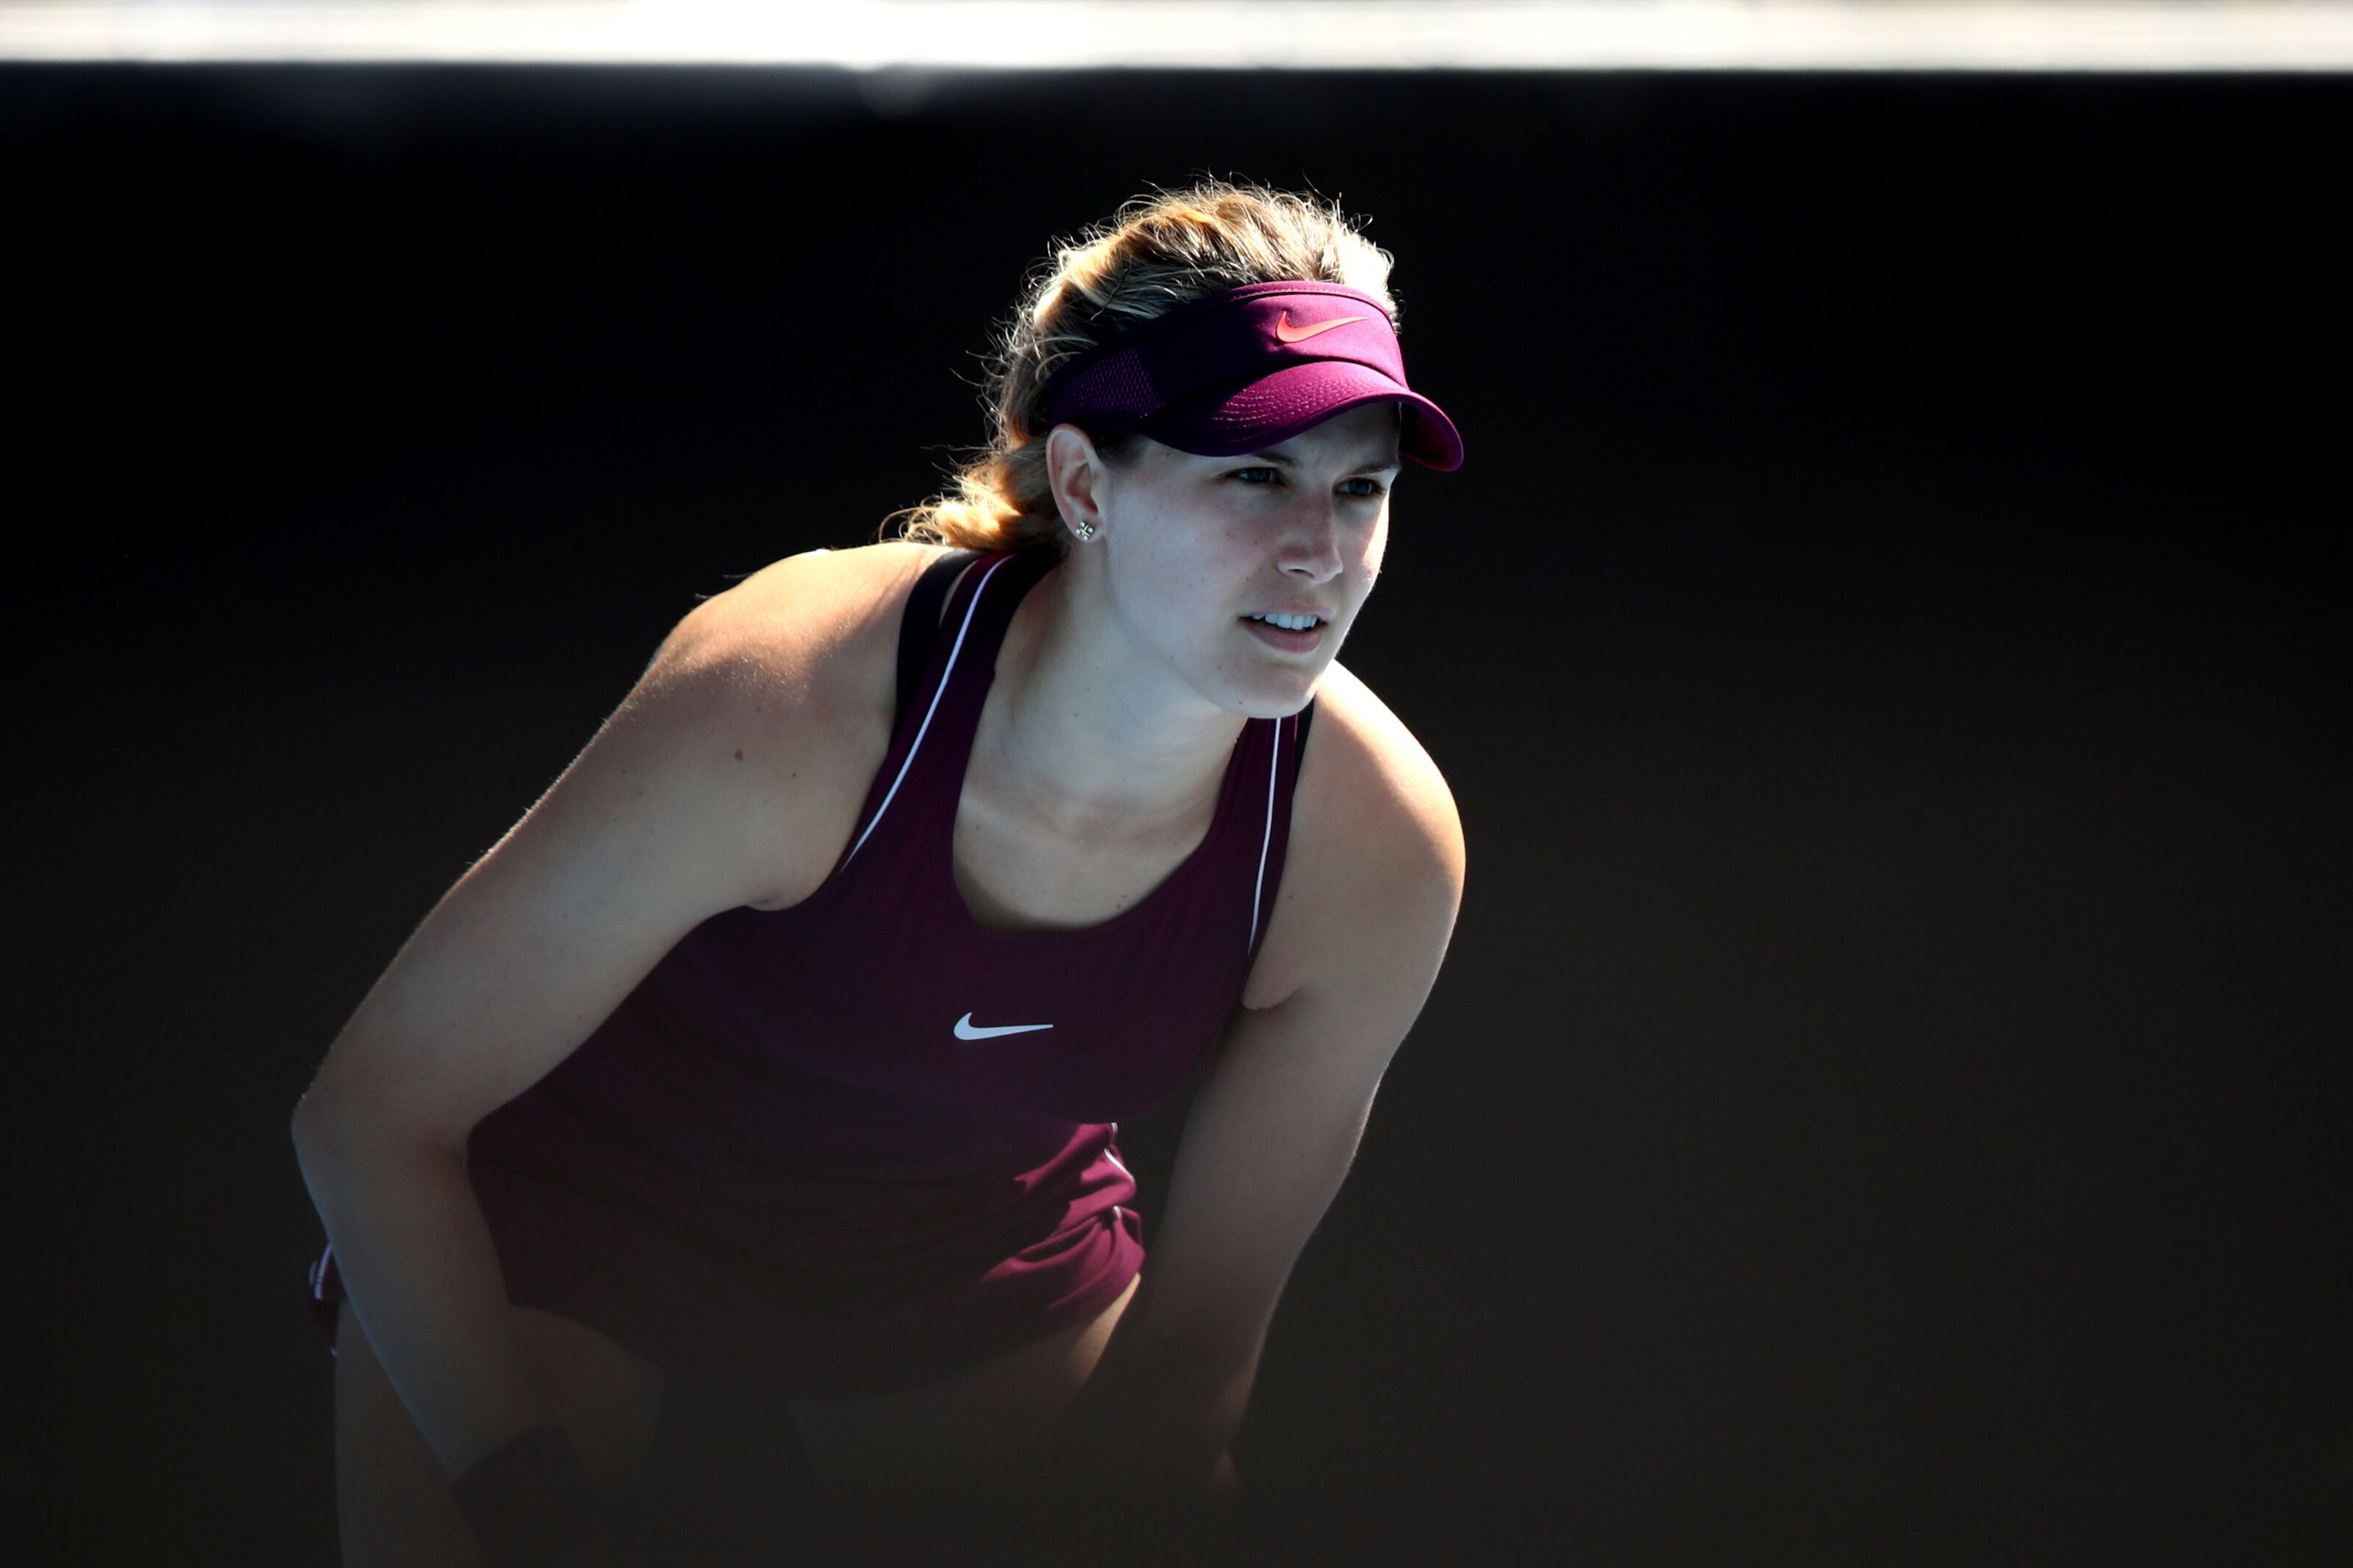 Can Eugenie Bouchard win her first match at the 2019 French Open?